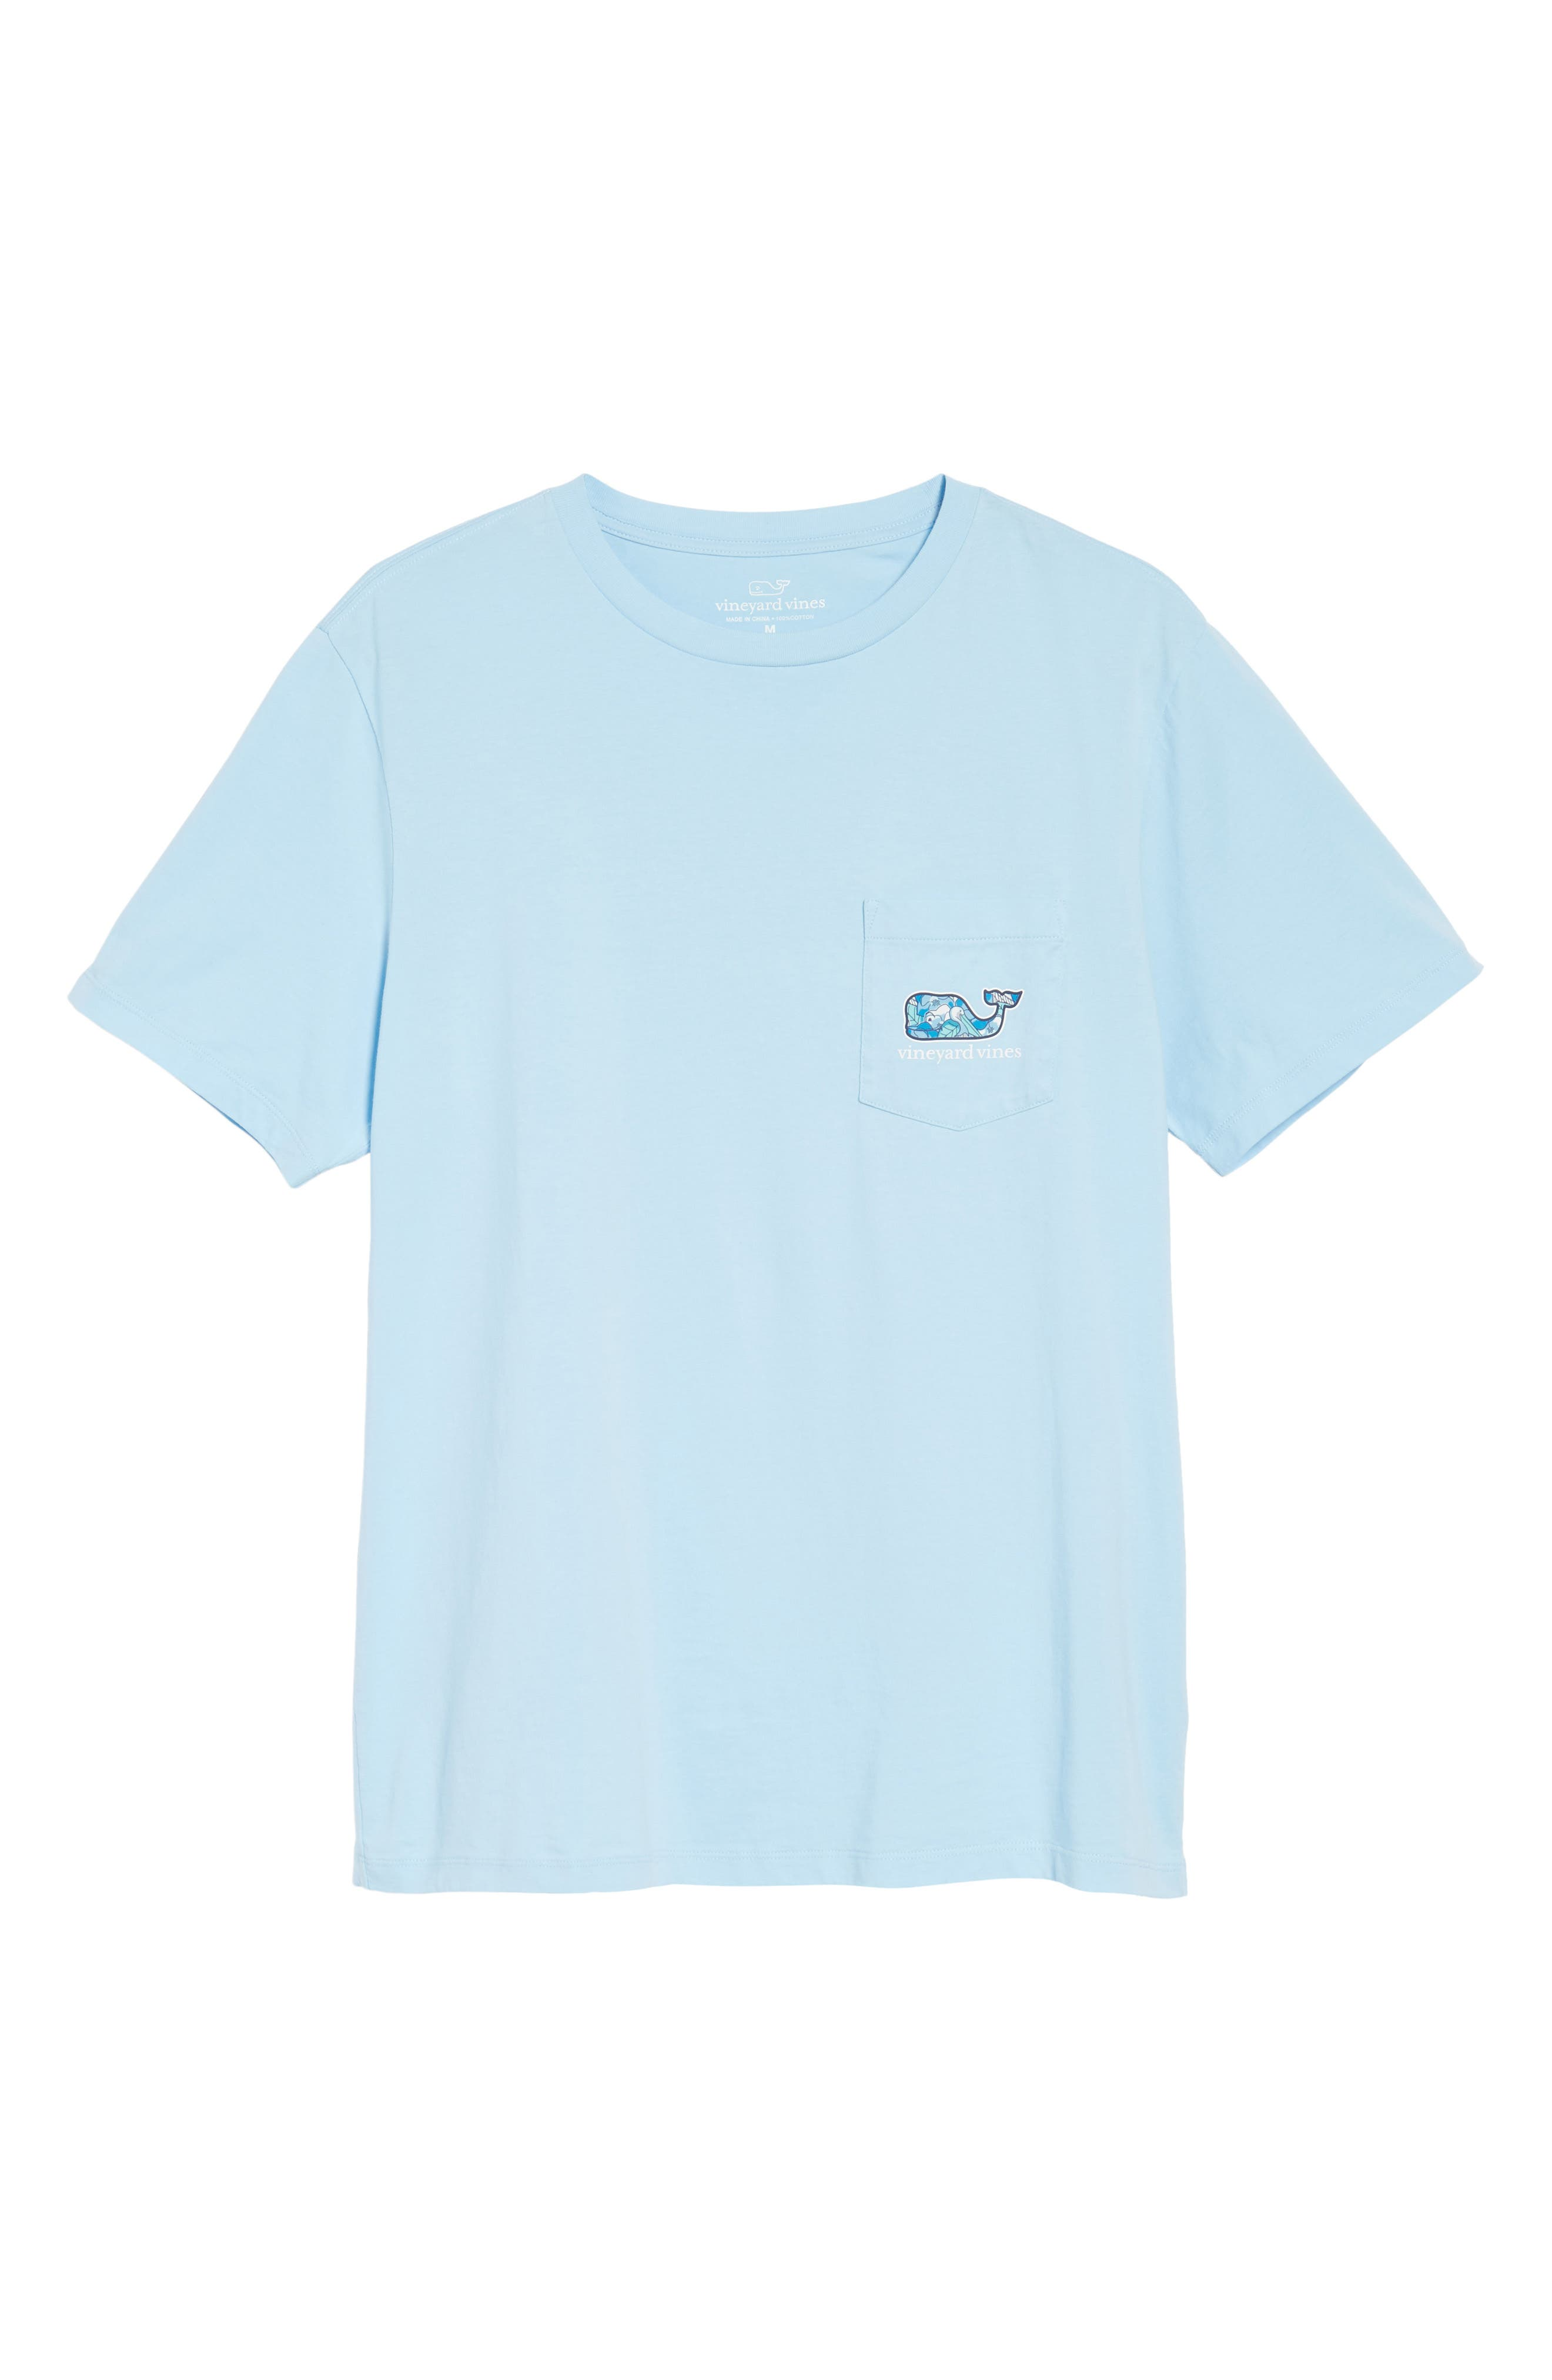 Pelican Magnolias Graphic T-Shirt,                             Alternate thumbnail 6, color,                             Airy Blue